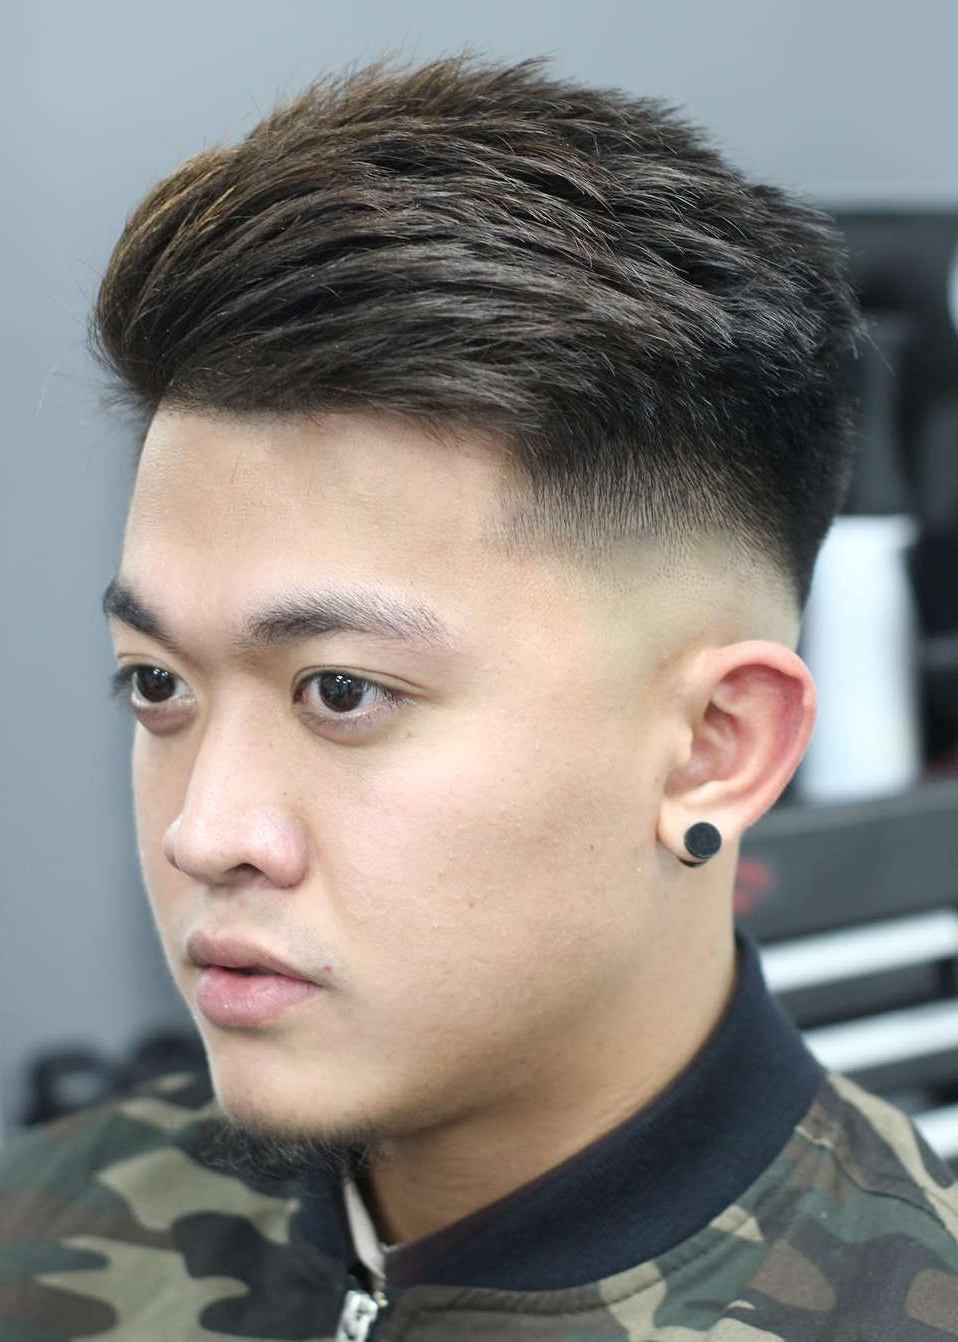 Top 30 Trendy Asian Men Hairstyles 2019 Intended For 2020 Neon Long Asian Hairstyles (View 13 of 20)